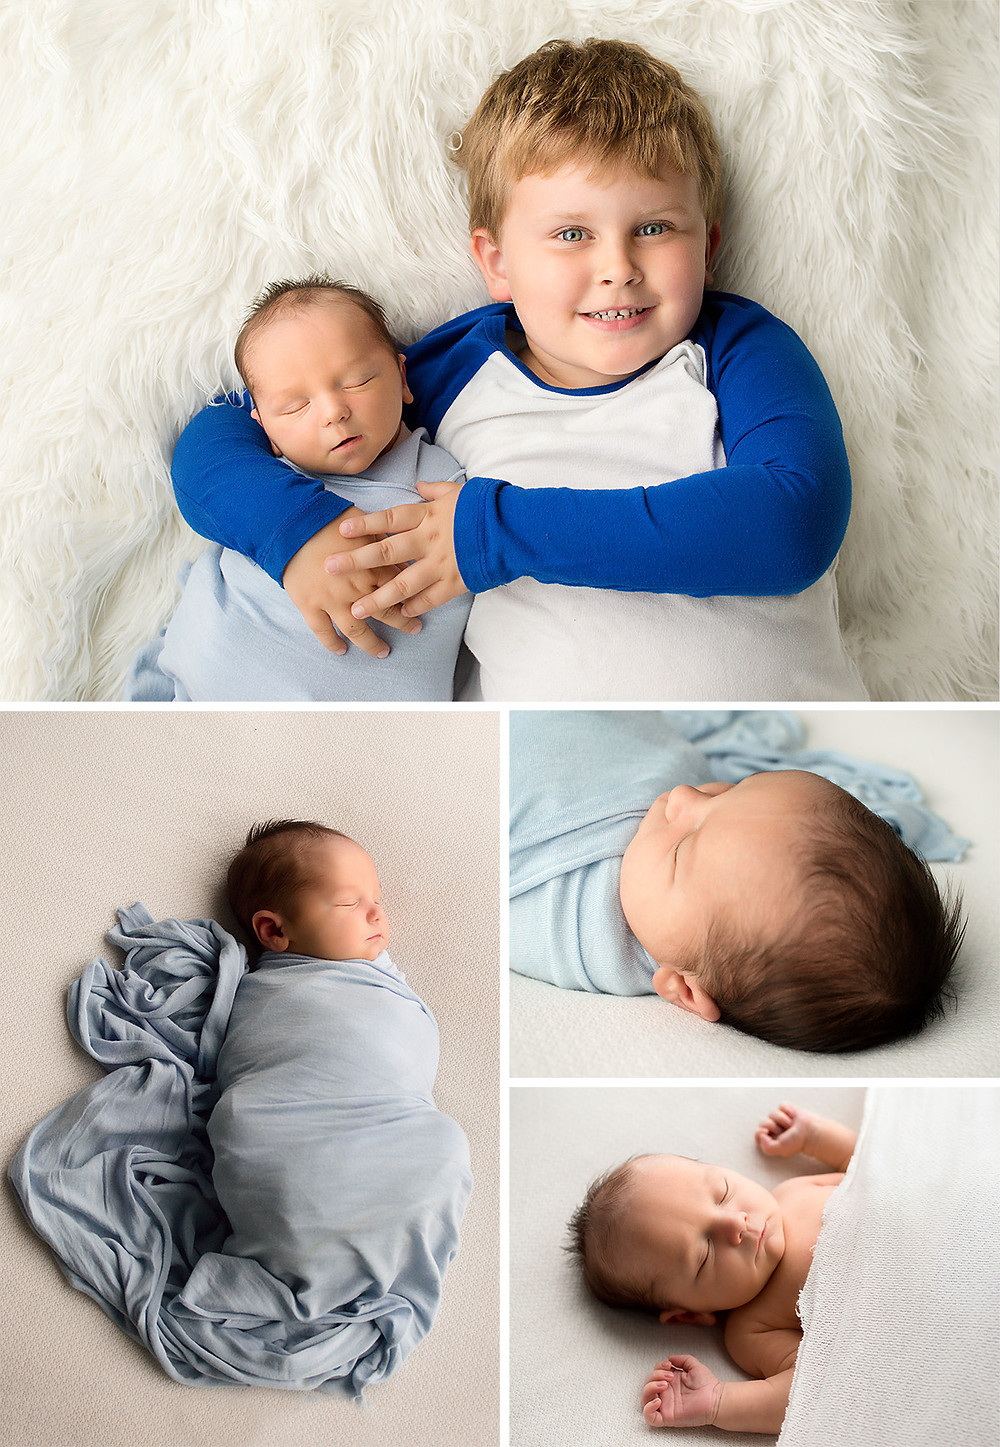 kelowna newborn baby boy in blue wrap with big brother's arms wrapped around him on a fluffy white rug